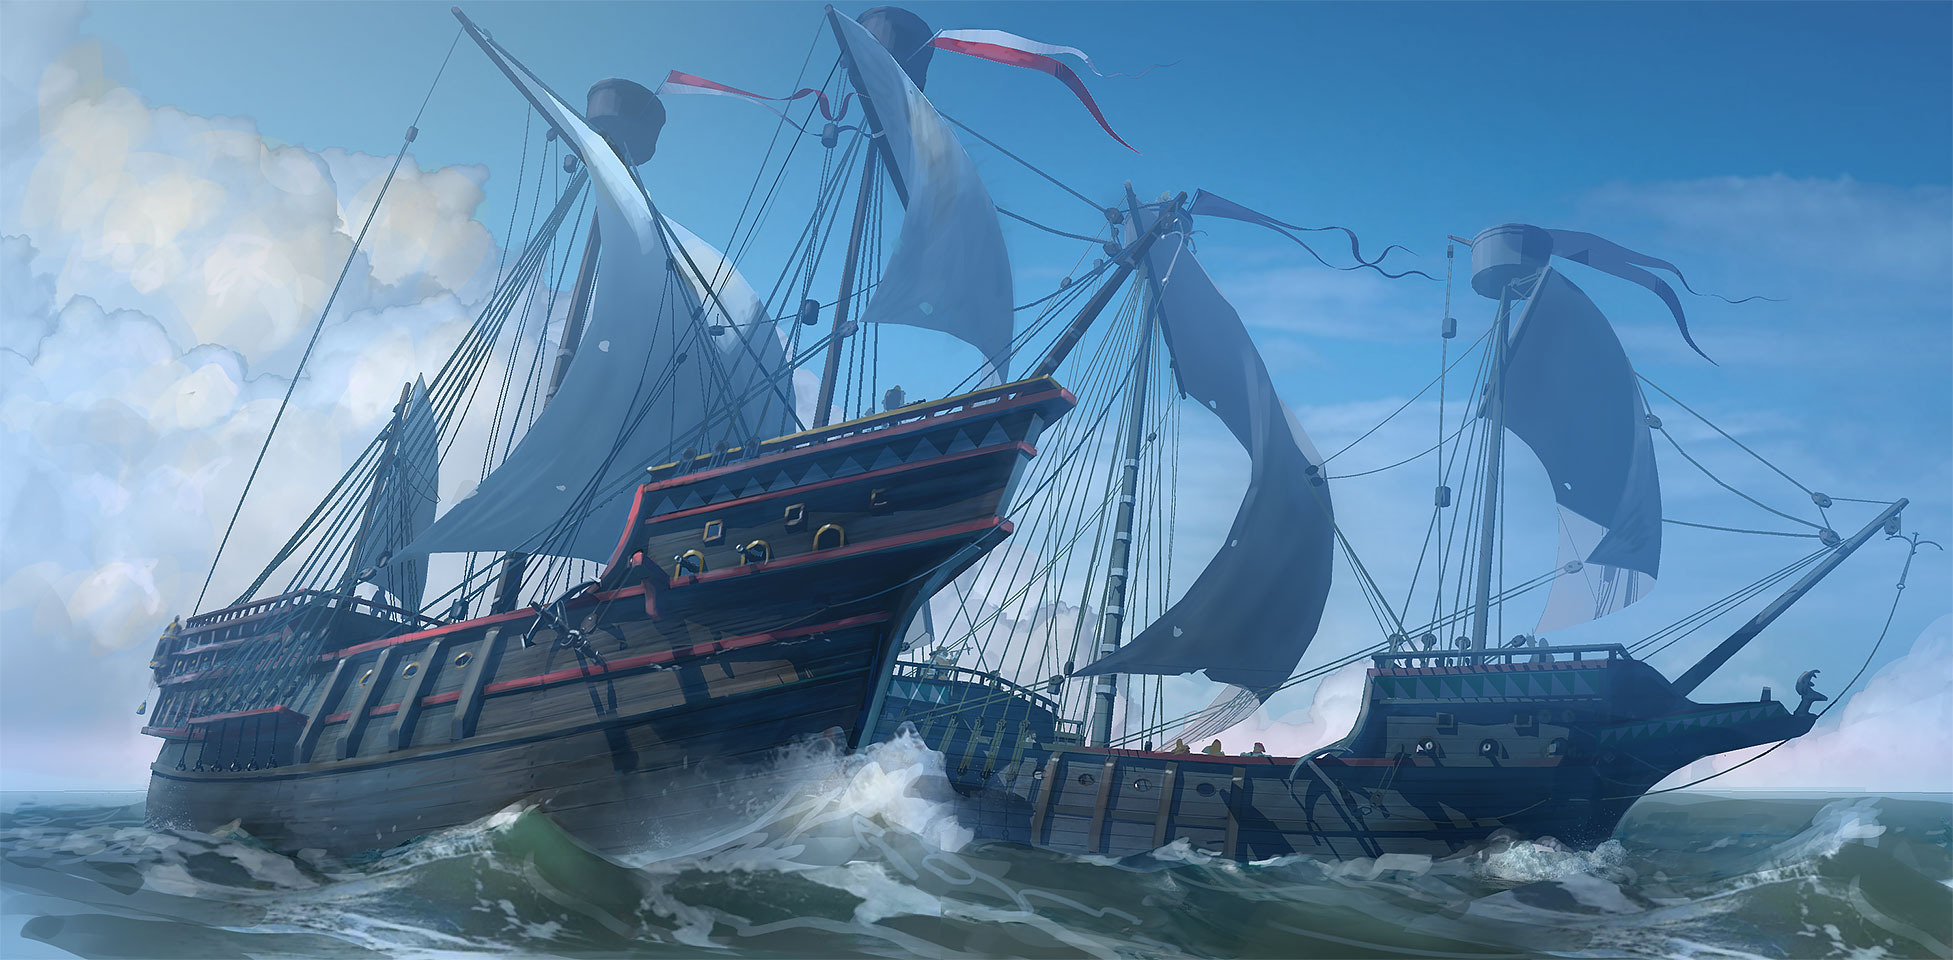 galleons - golden hind 1577. Photoshop painting. Carsten Brandt